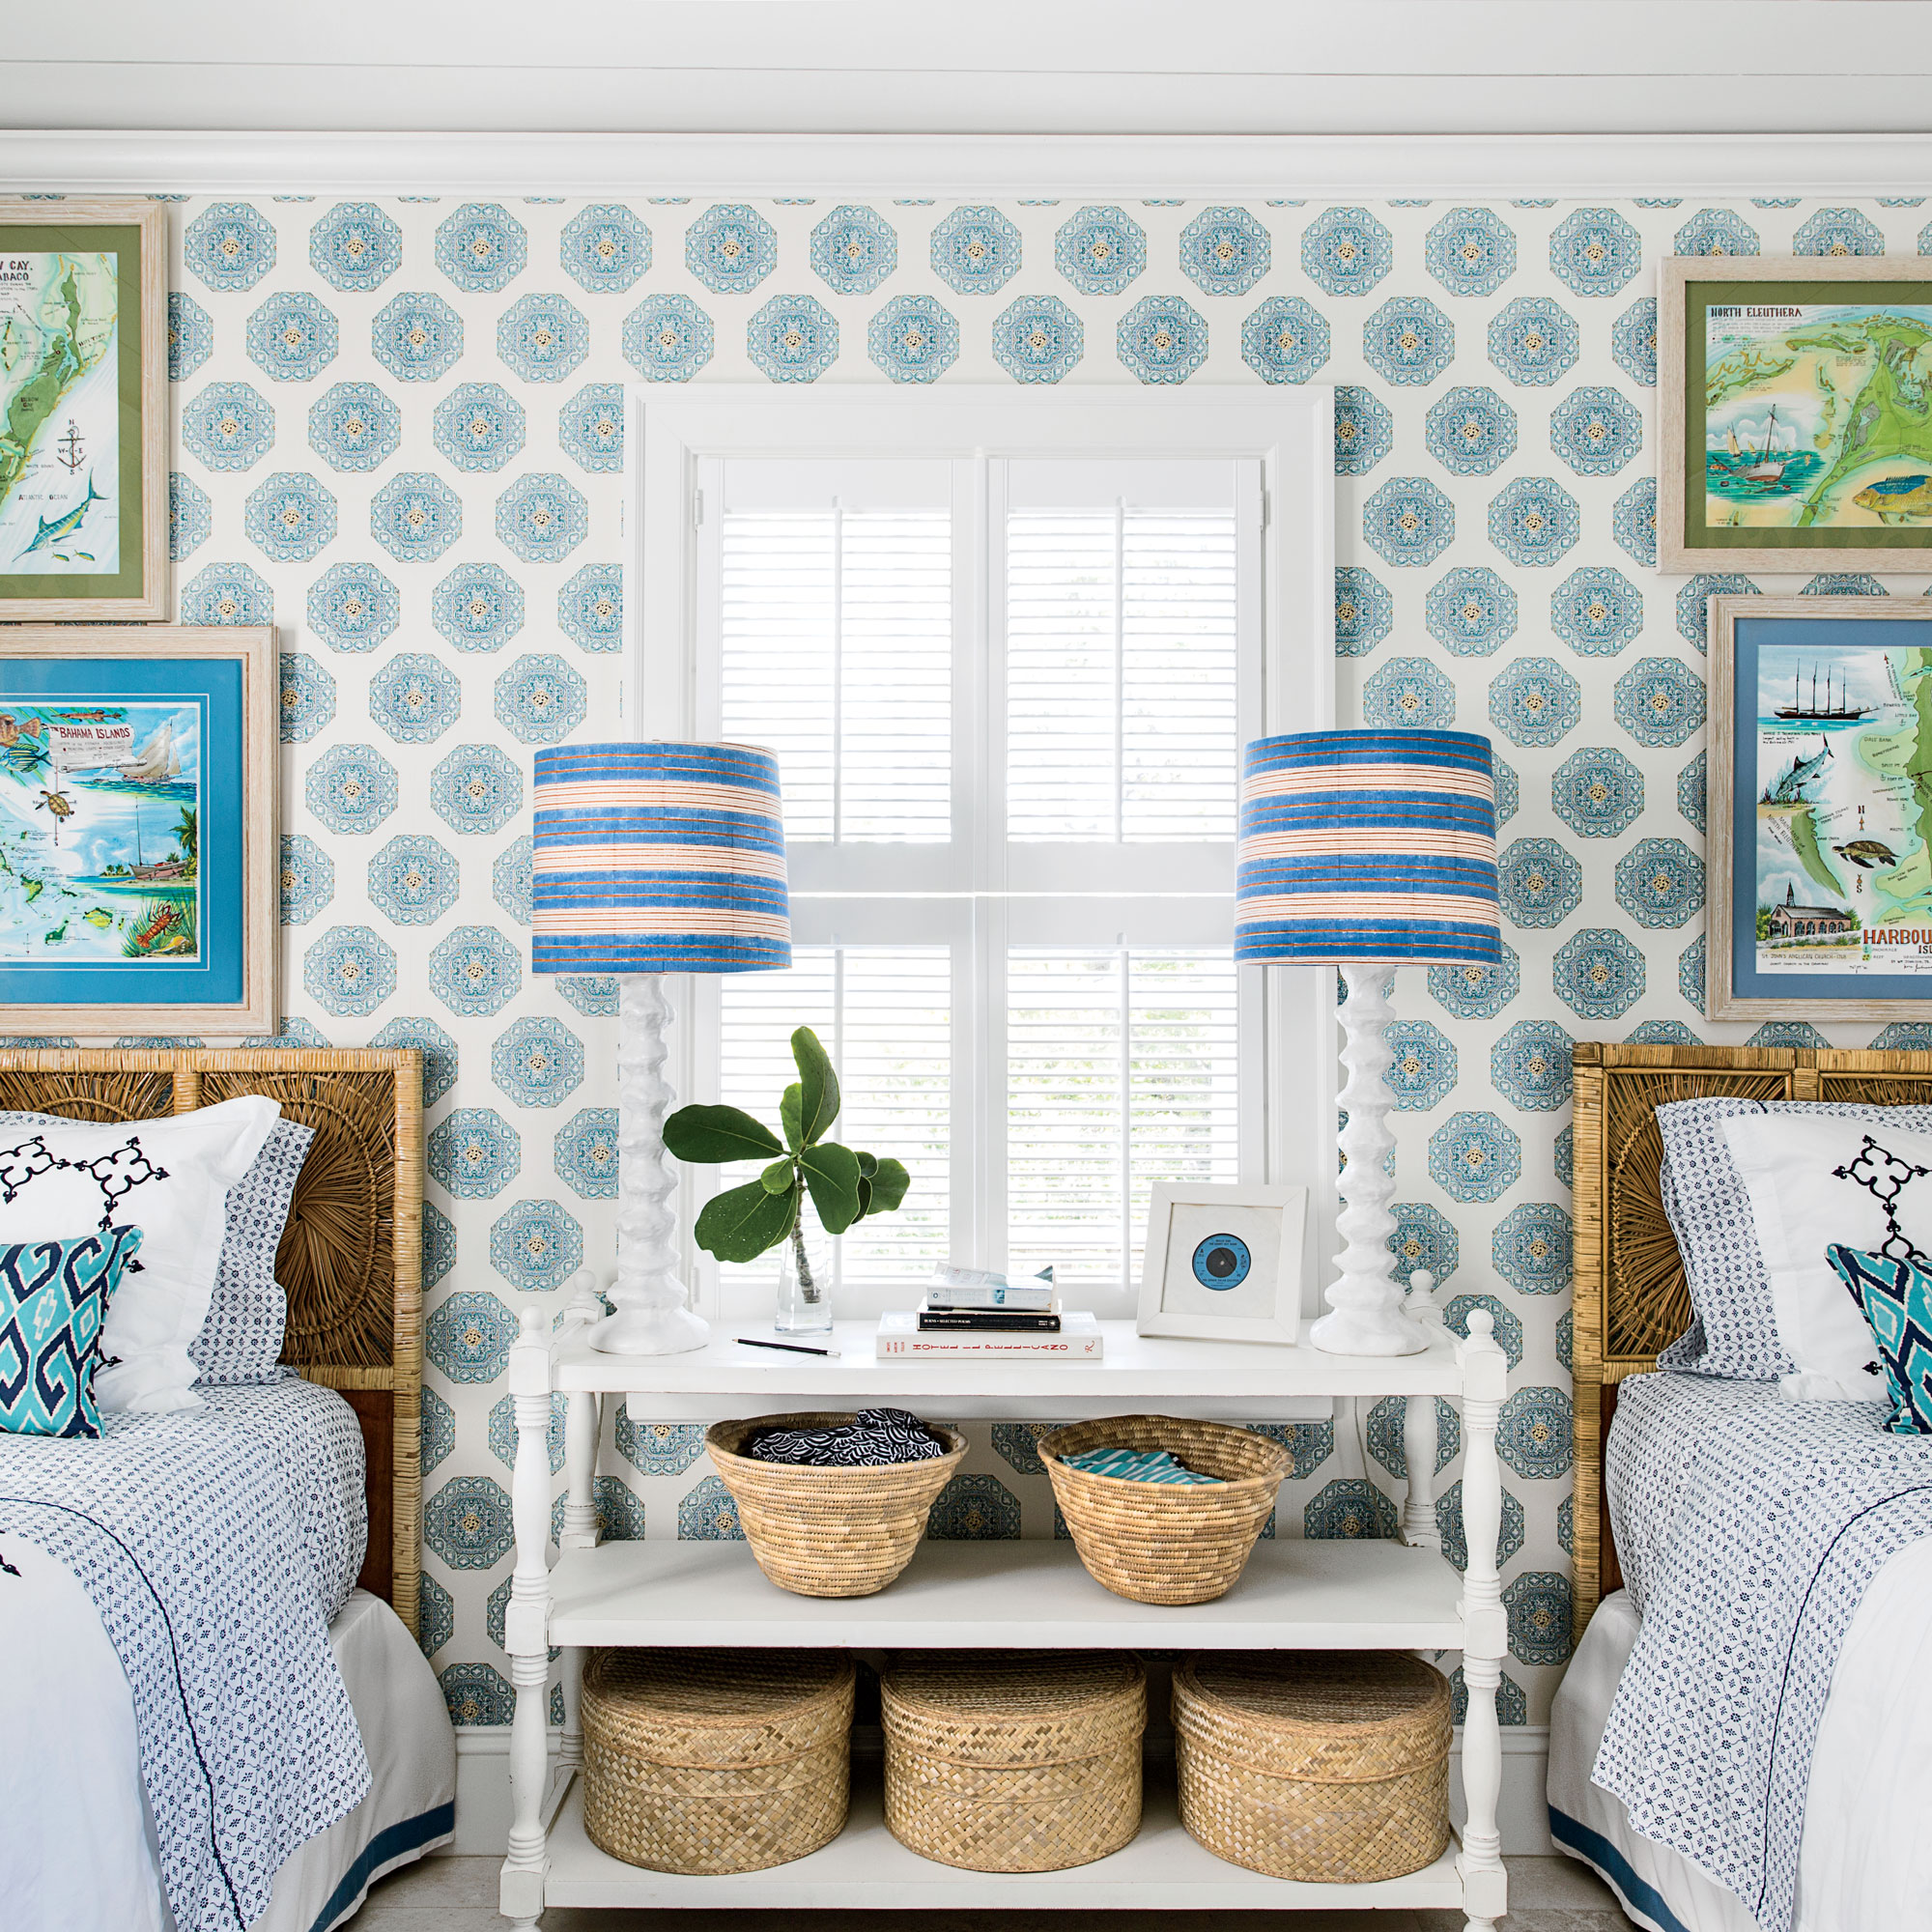 """""""Charming wallpaper gives a room a special, tucked-away feel,"""" says designer Amanda Lindroff, who applied a blue medallion print to the walls of this Harbour Island guest bedroom. Watercolors of Elbow Cay, Eleuthera, and Harbour Island are framed with mat"""